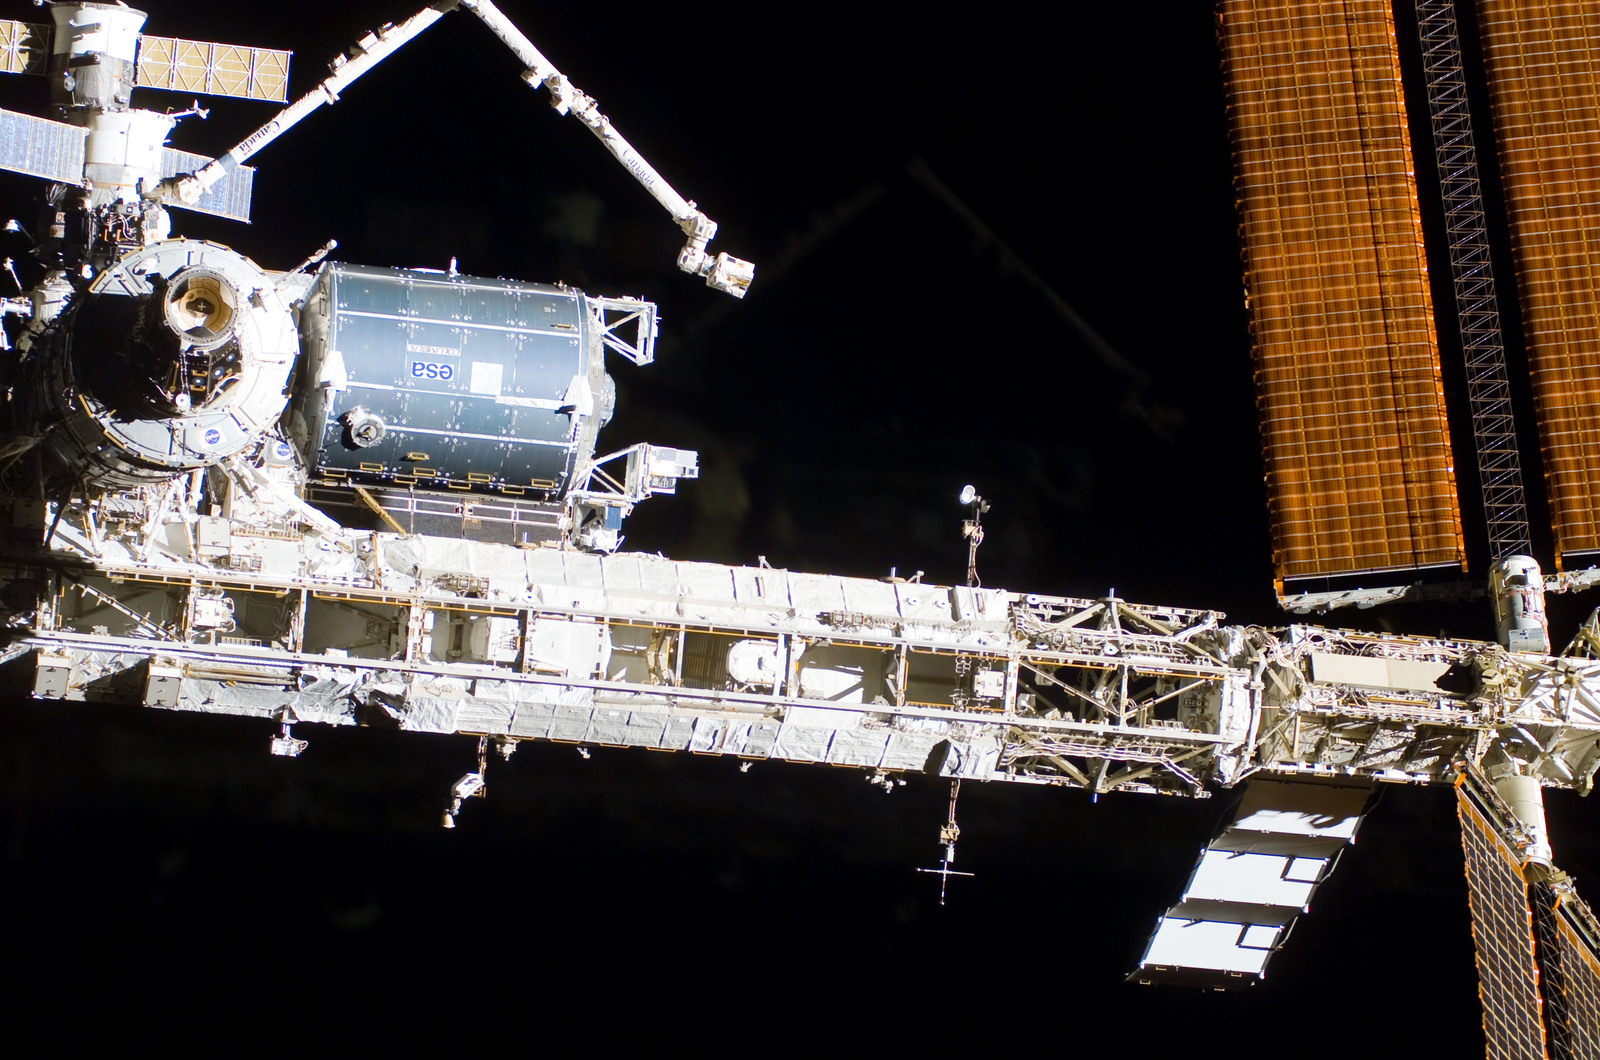 S122E009935 - STS-122 - Flyaround view of ISS after STS-122 Undocking